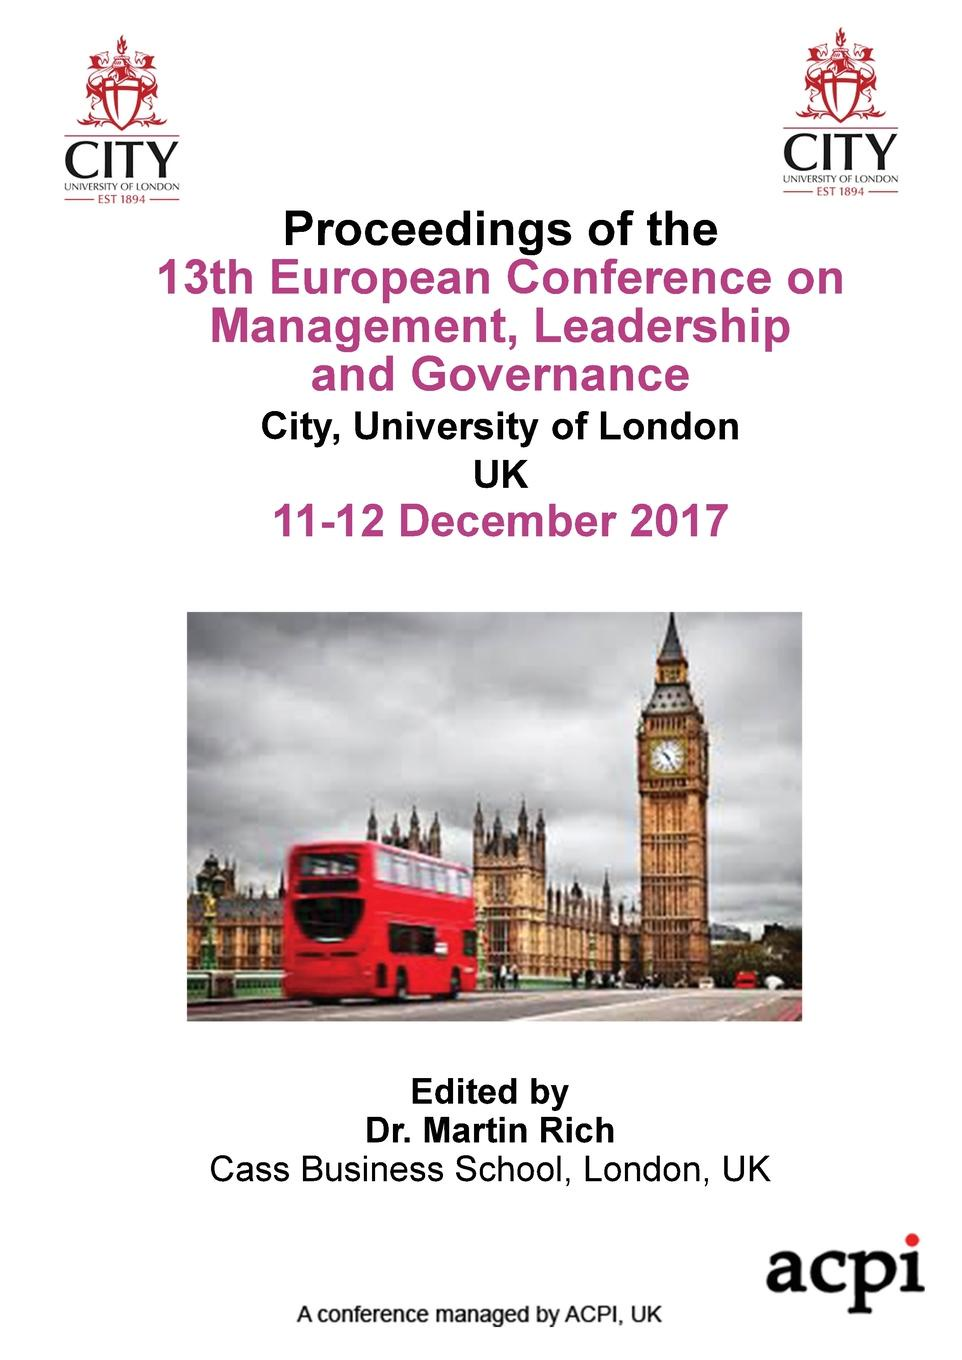 ECMLG17 - Proceedings of the 13th European Conference on Management Leadership and Governance integral management and governance empirical findings of mer model